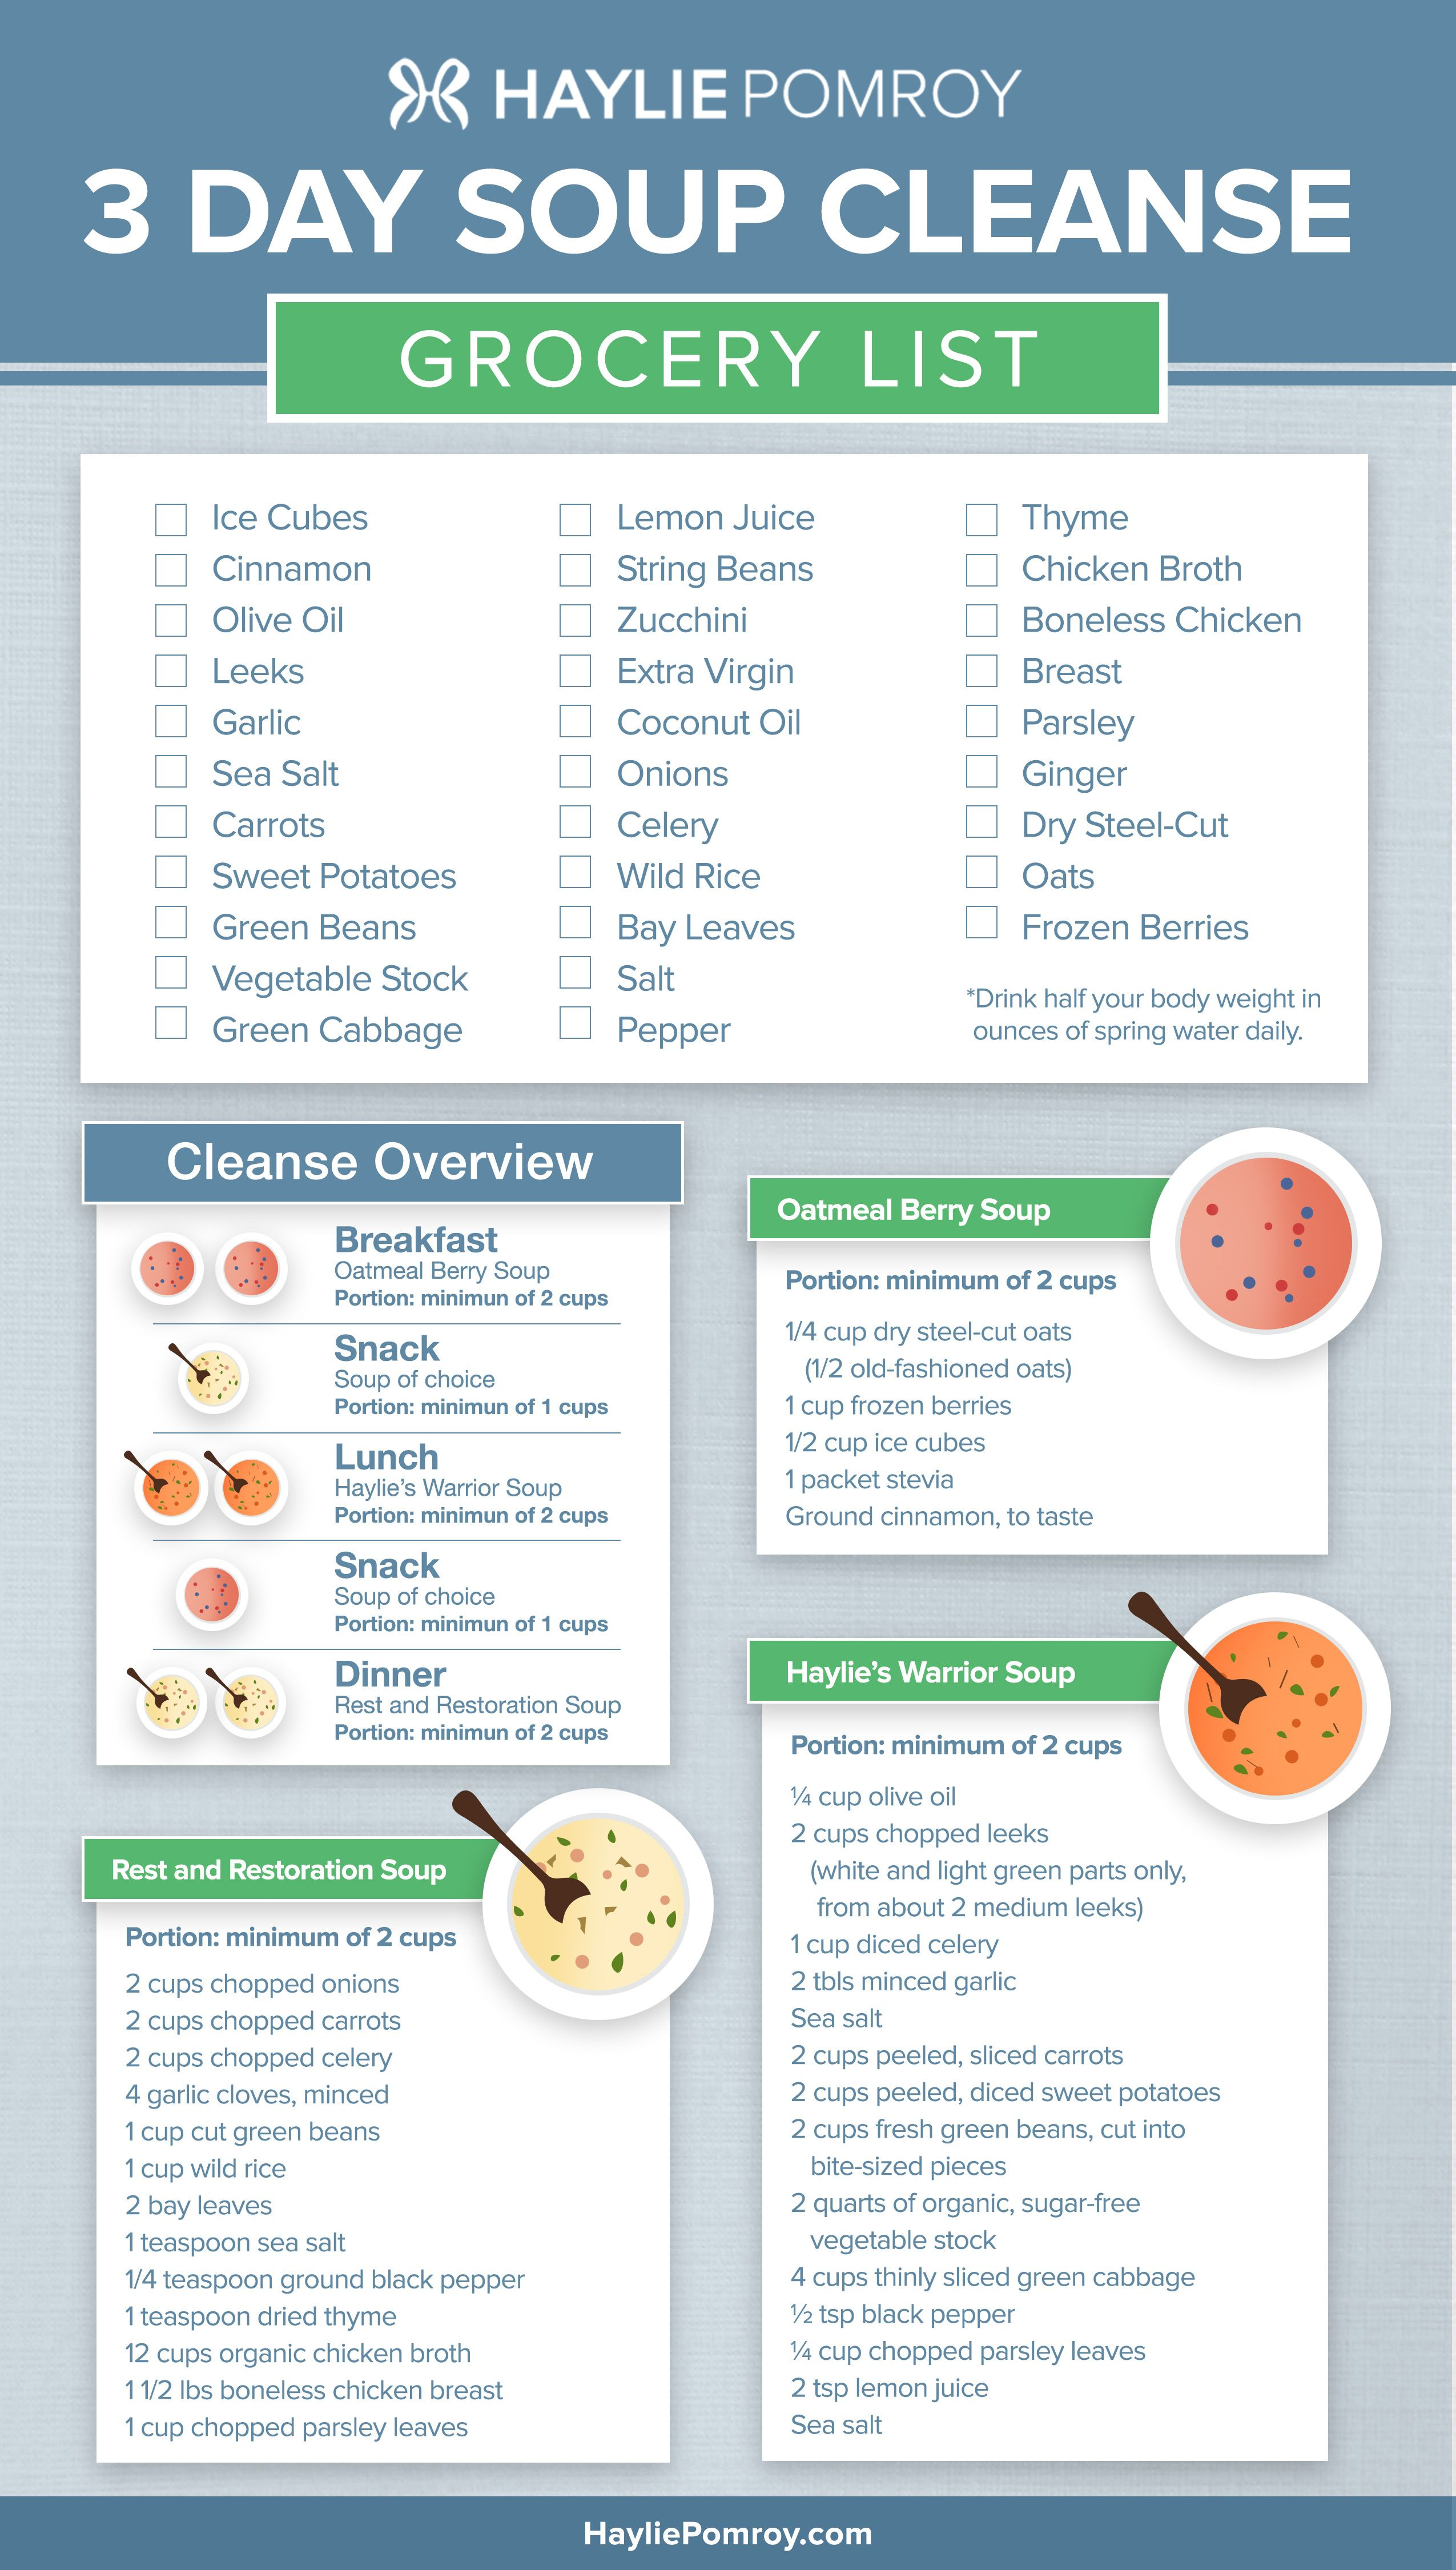 The Fast Metabolism Diet: What Foods are Allowed and Not Allowed?